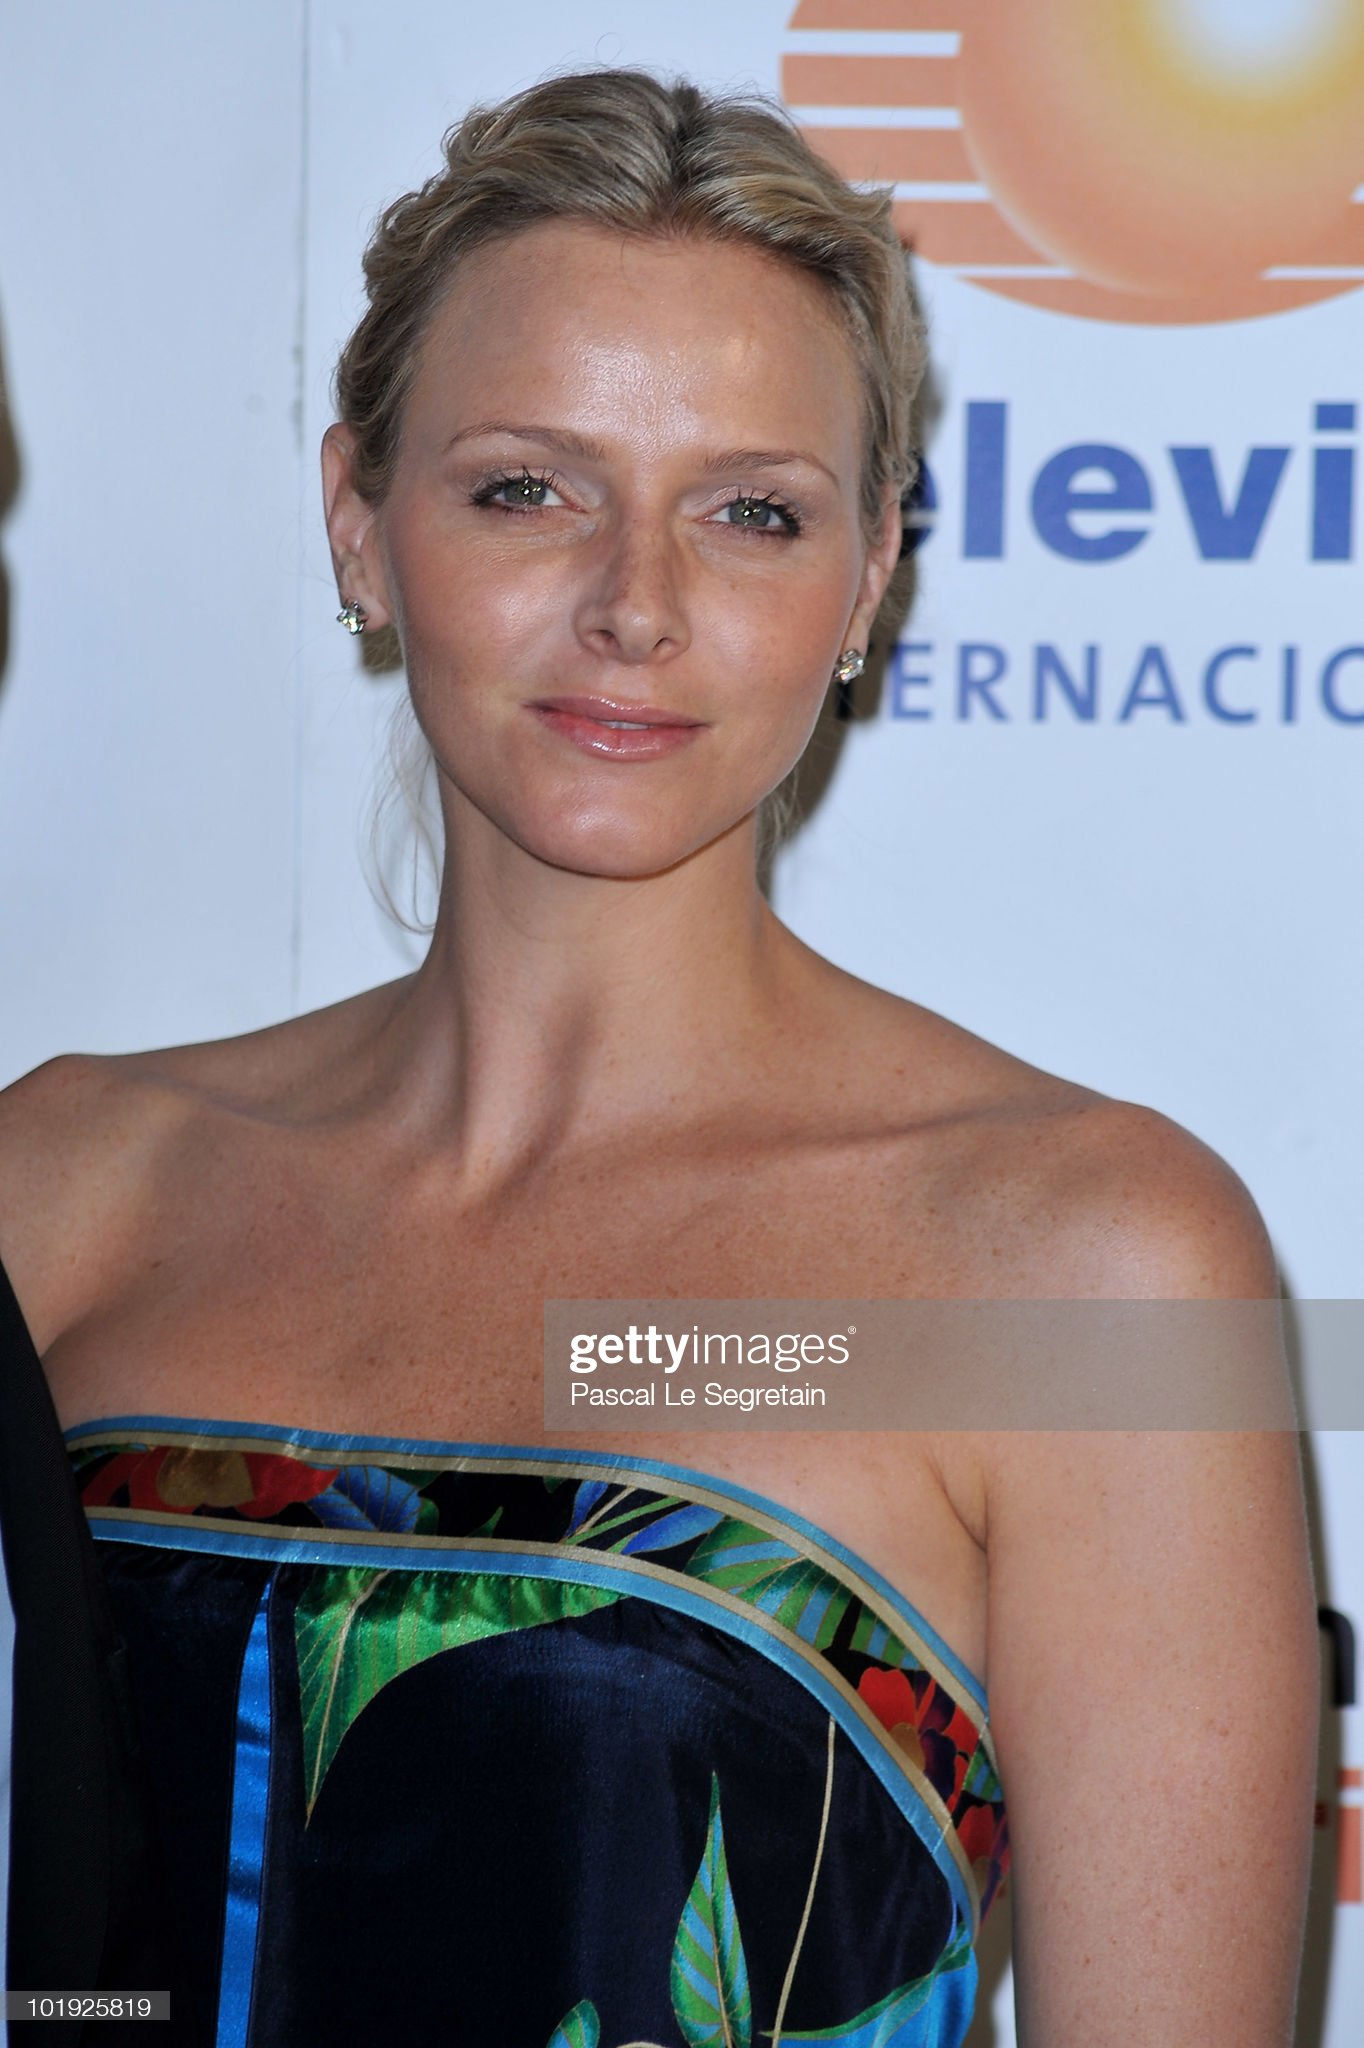 Monte Carlo TV Festival - 50th Anniversary Celebration : News Photo